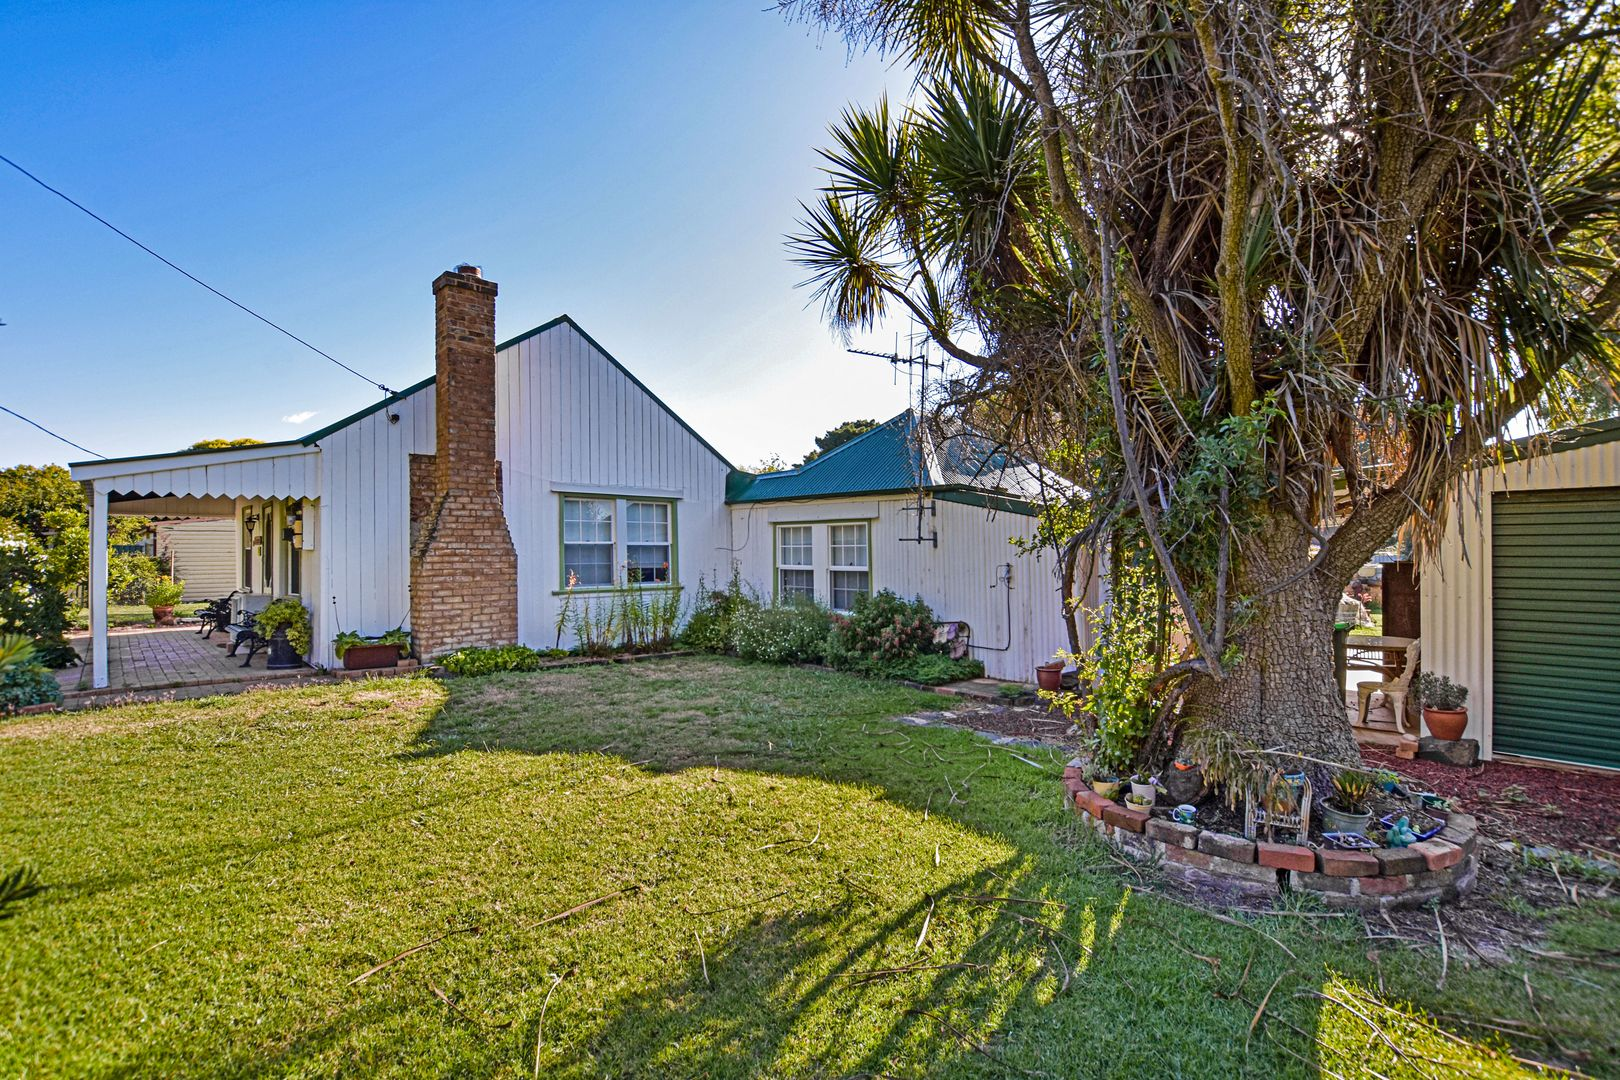 18-20 Lucknow Street, Spring Hill NSW 2800, Image 1